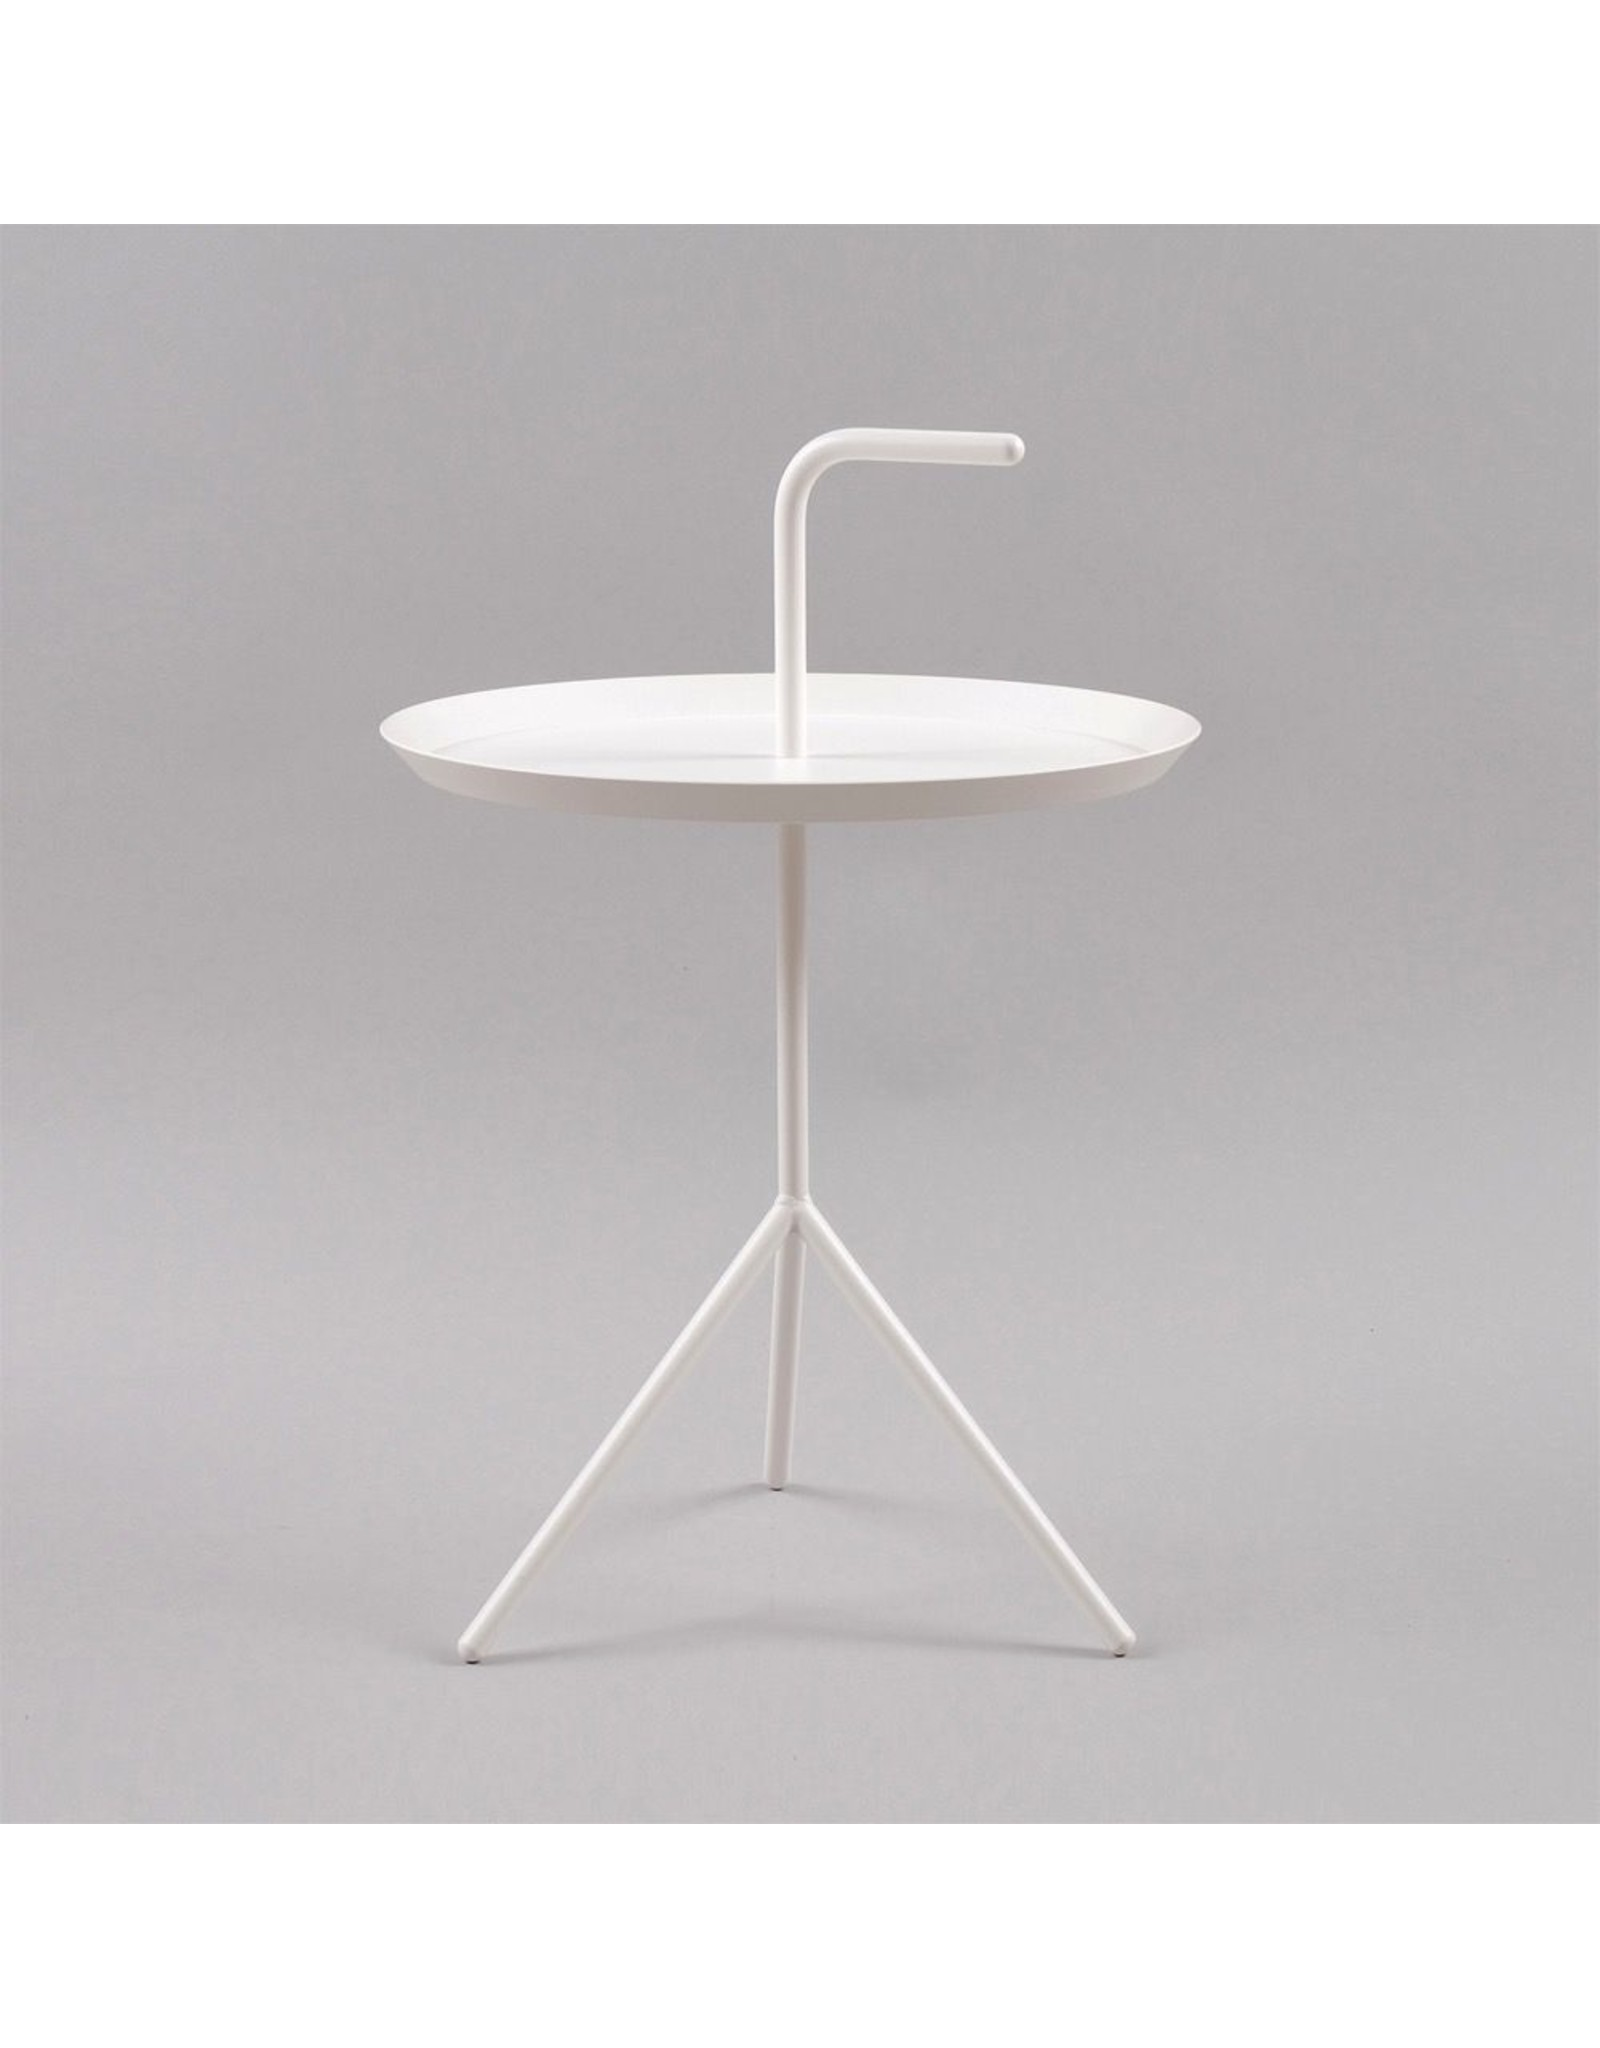 HAY DLM XL Table White